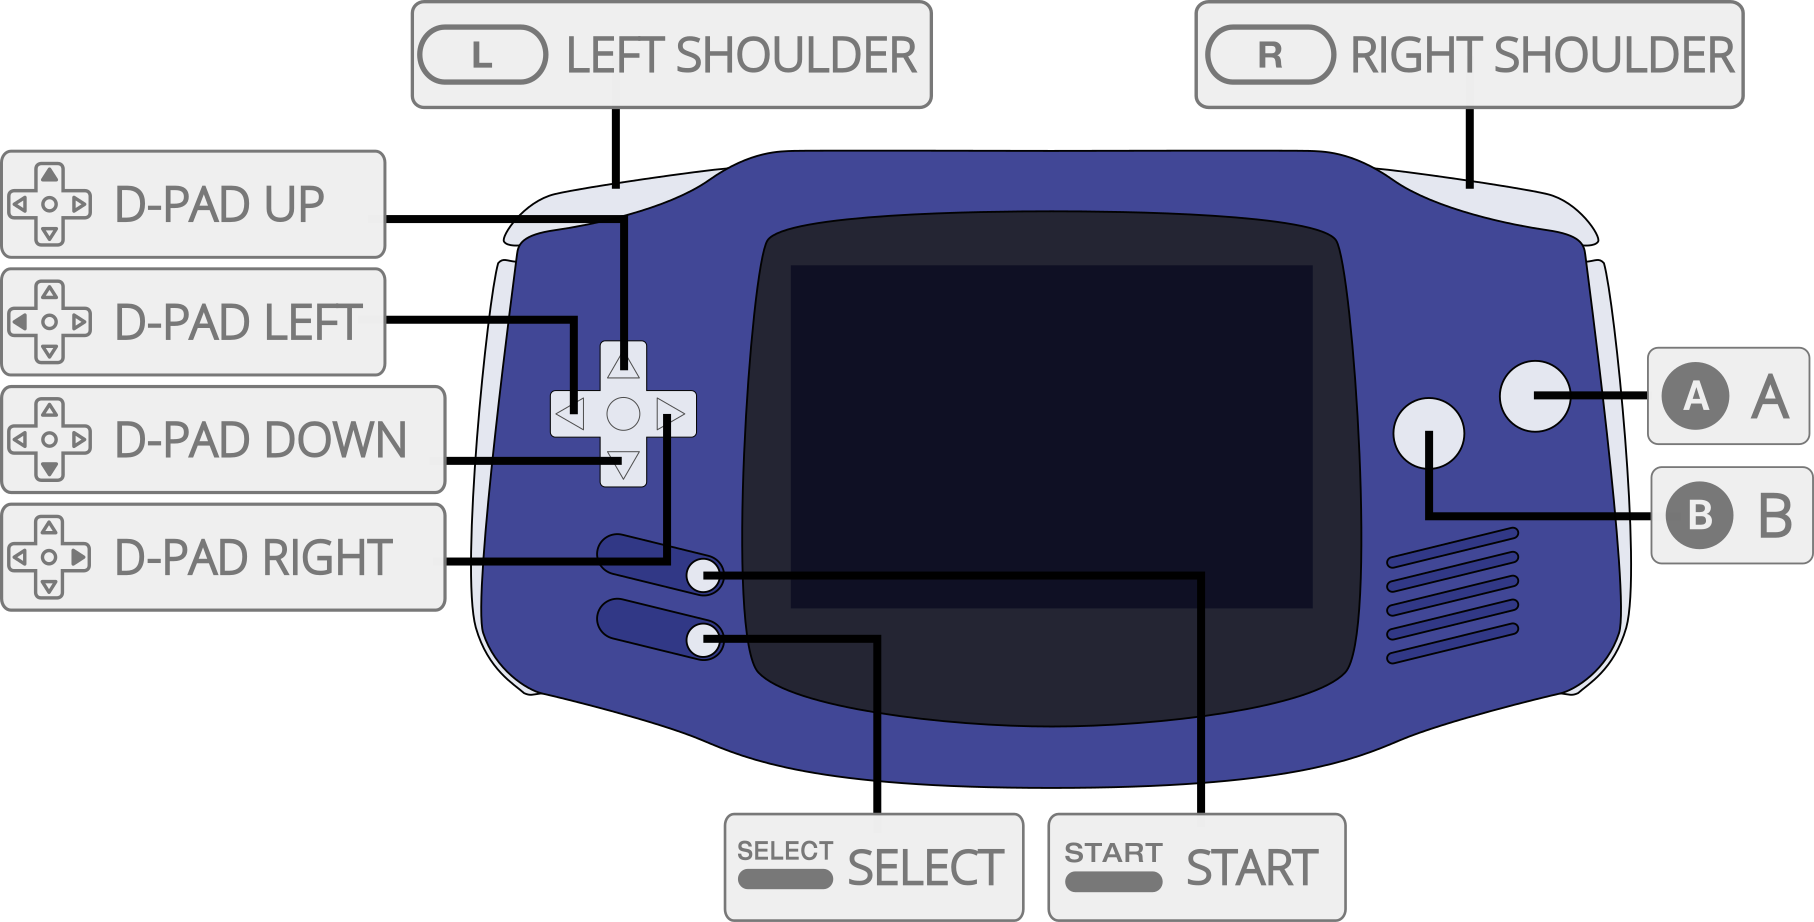 nintendo_gameboyadvance_diagram